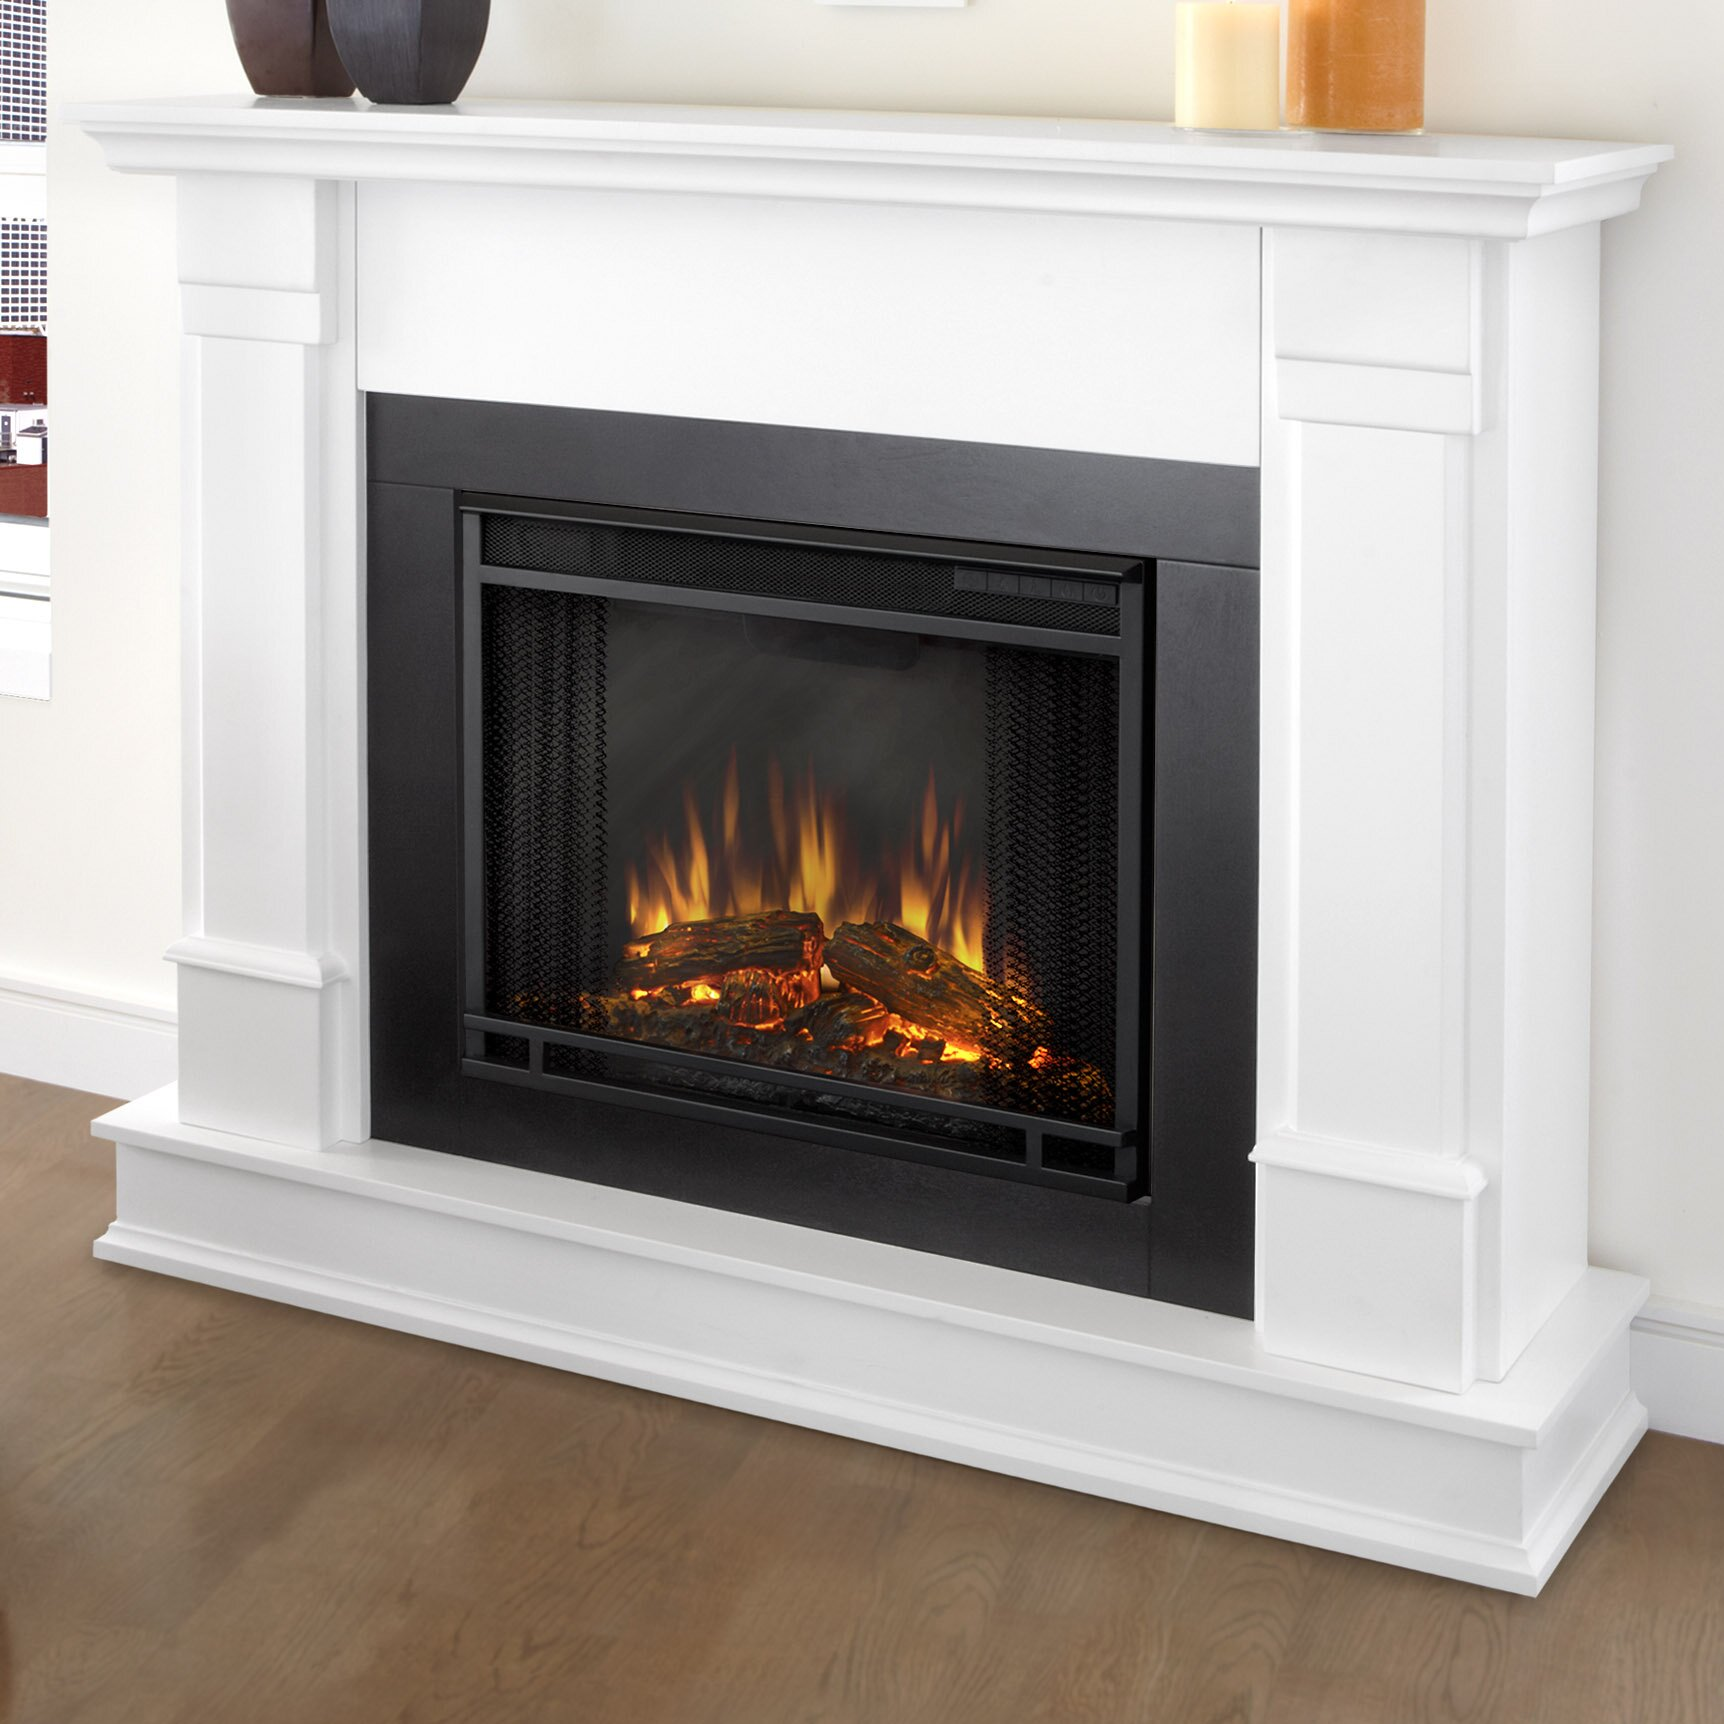 Wayfair Com Sales: Real Flame Silverton Electric Fireplace & Reviews